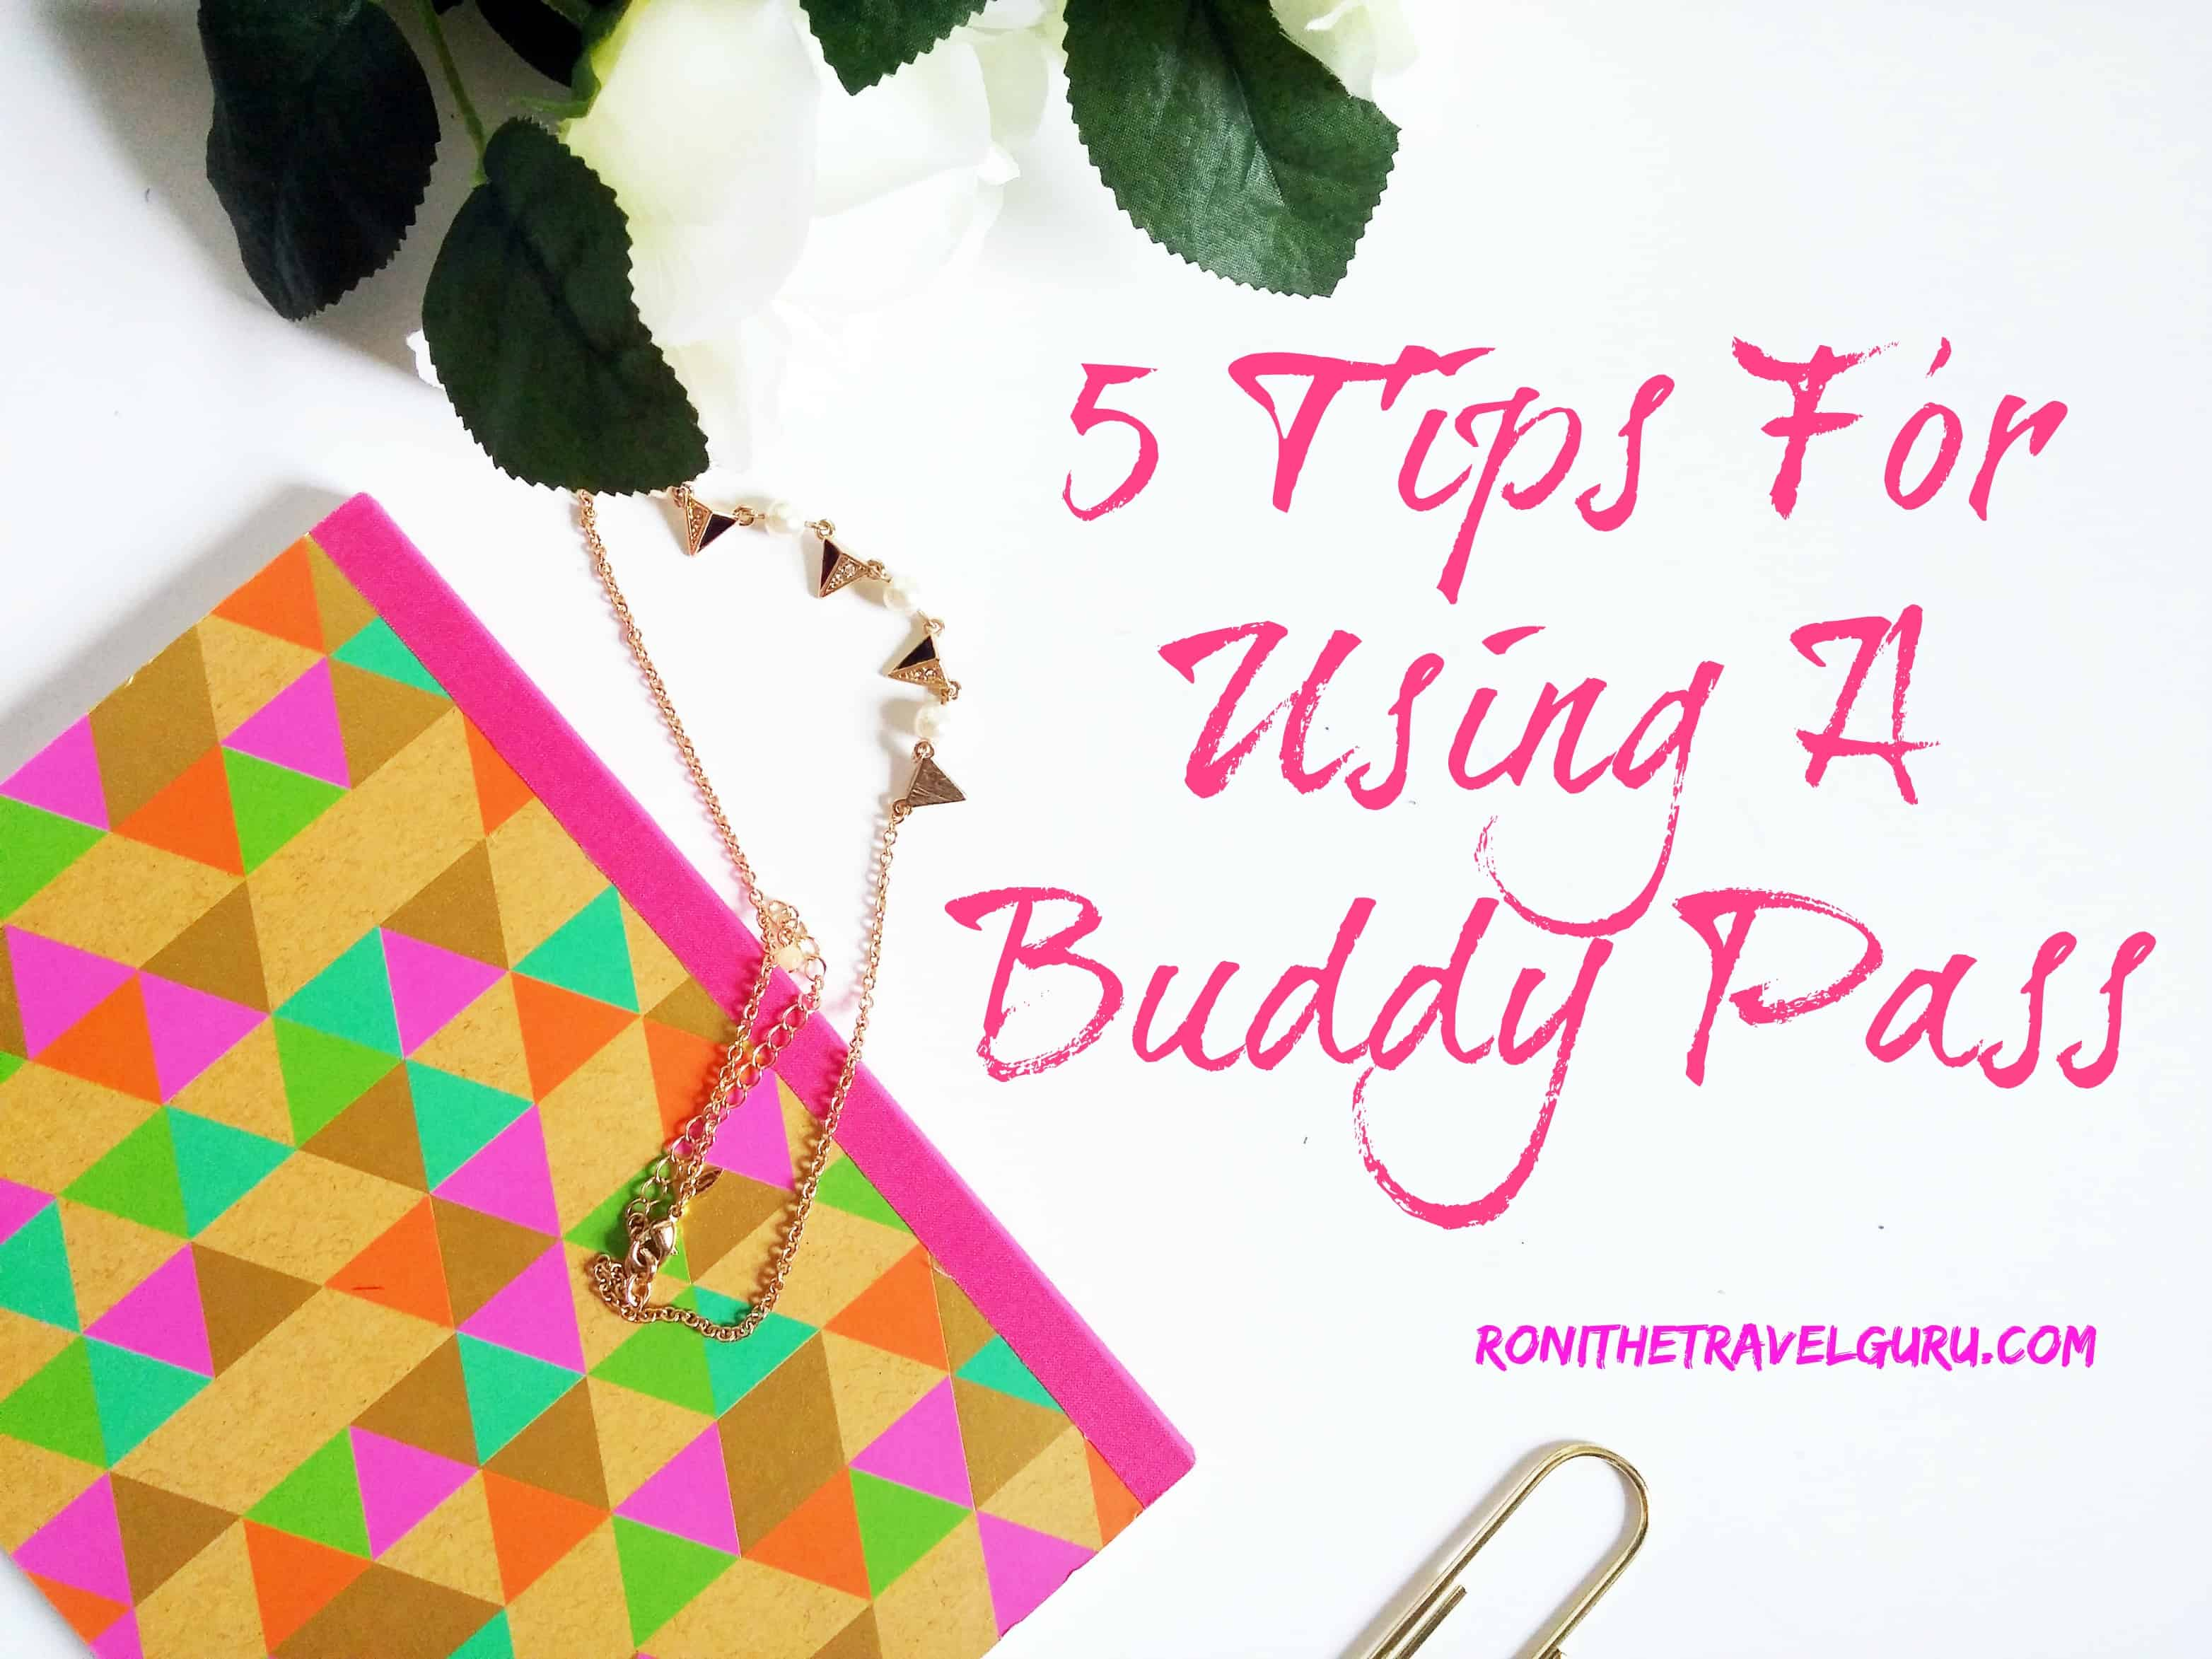 tips for using a buddy pass